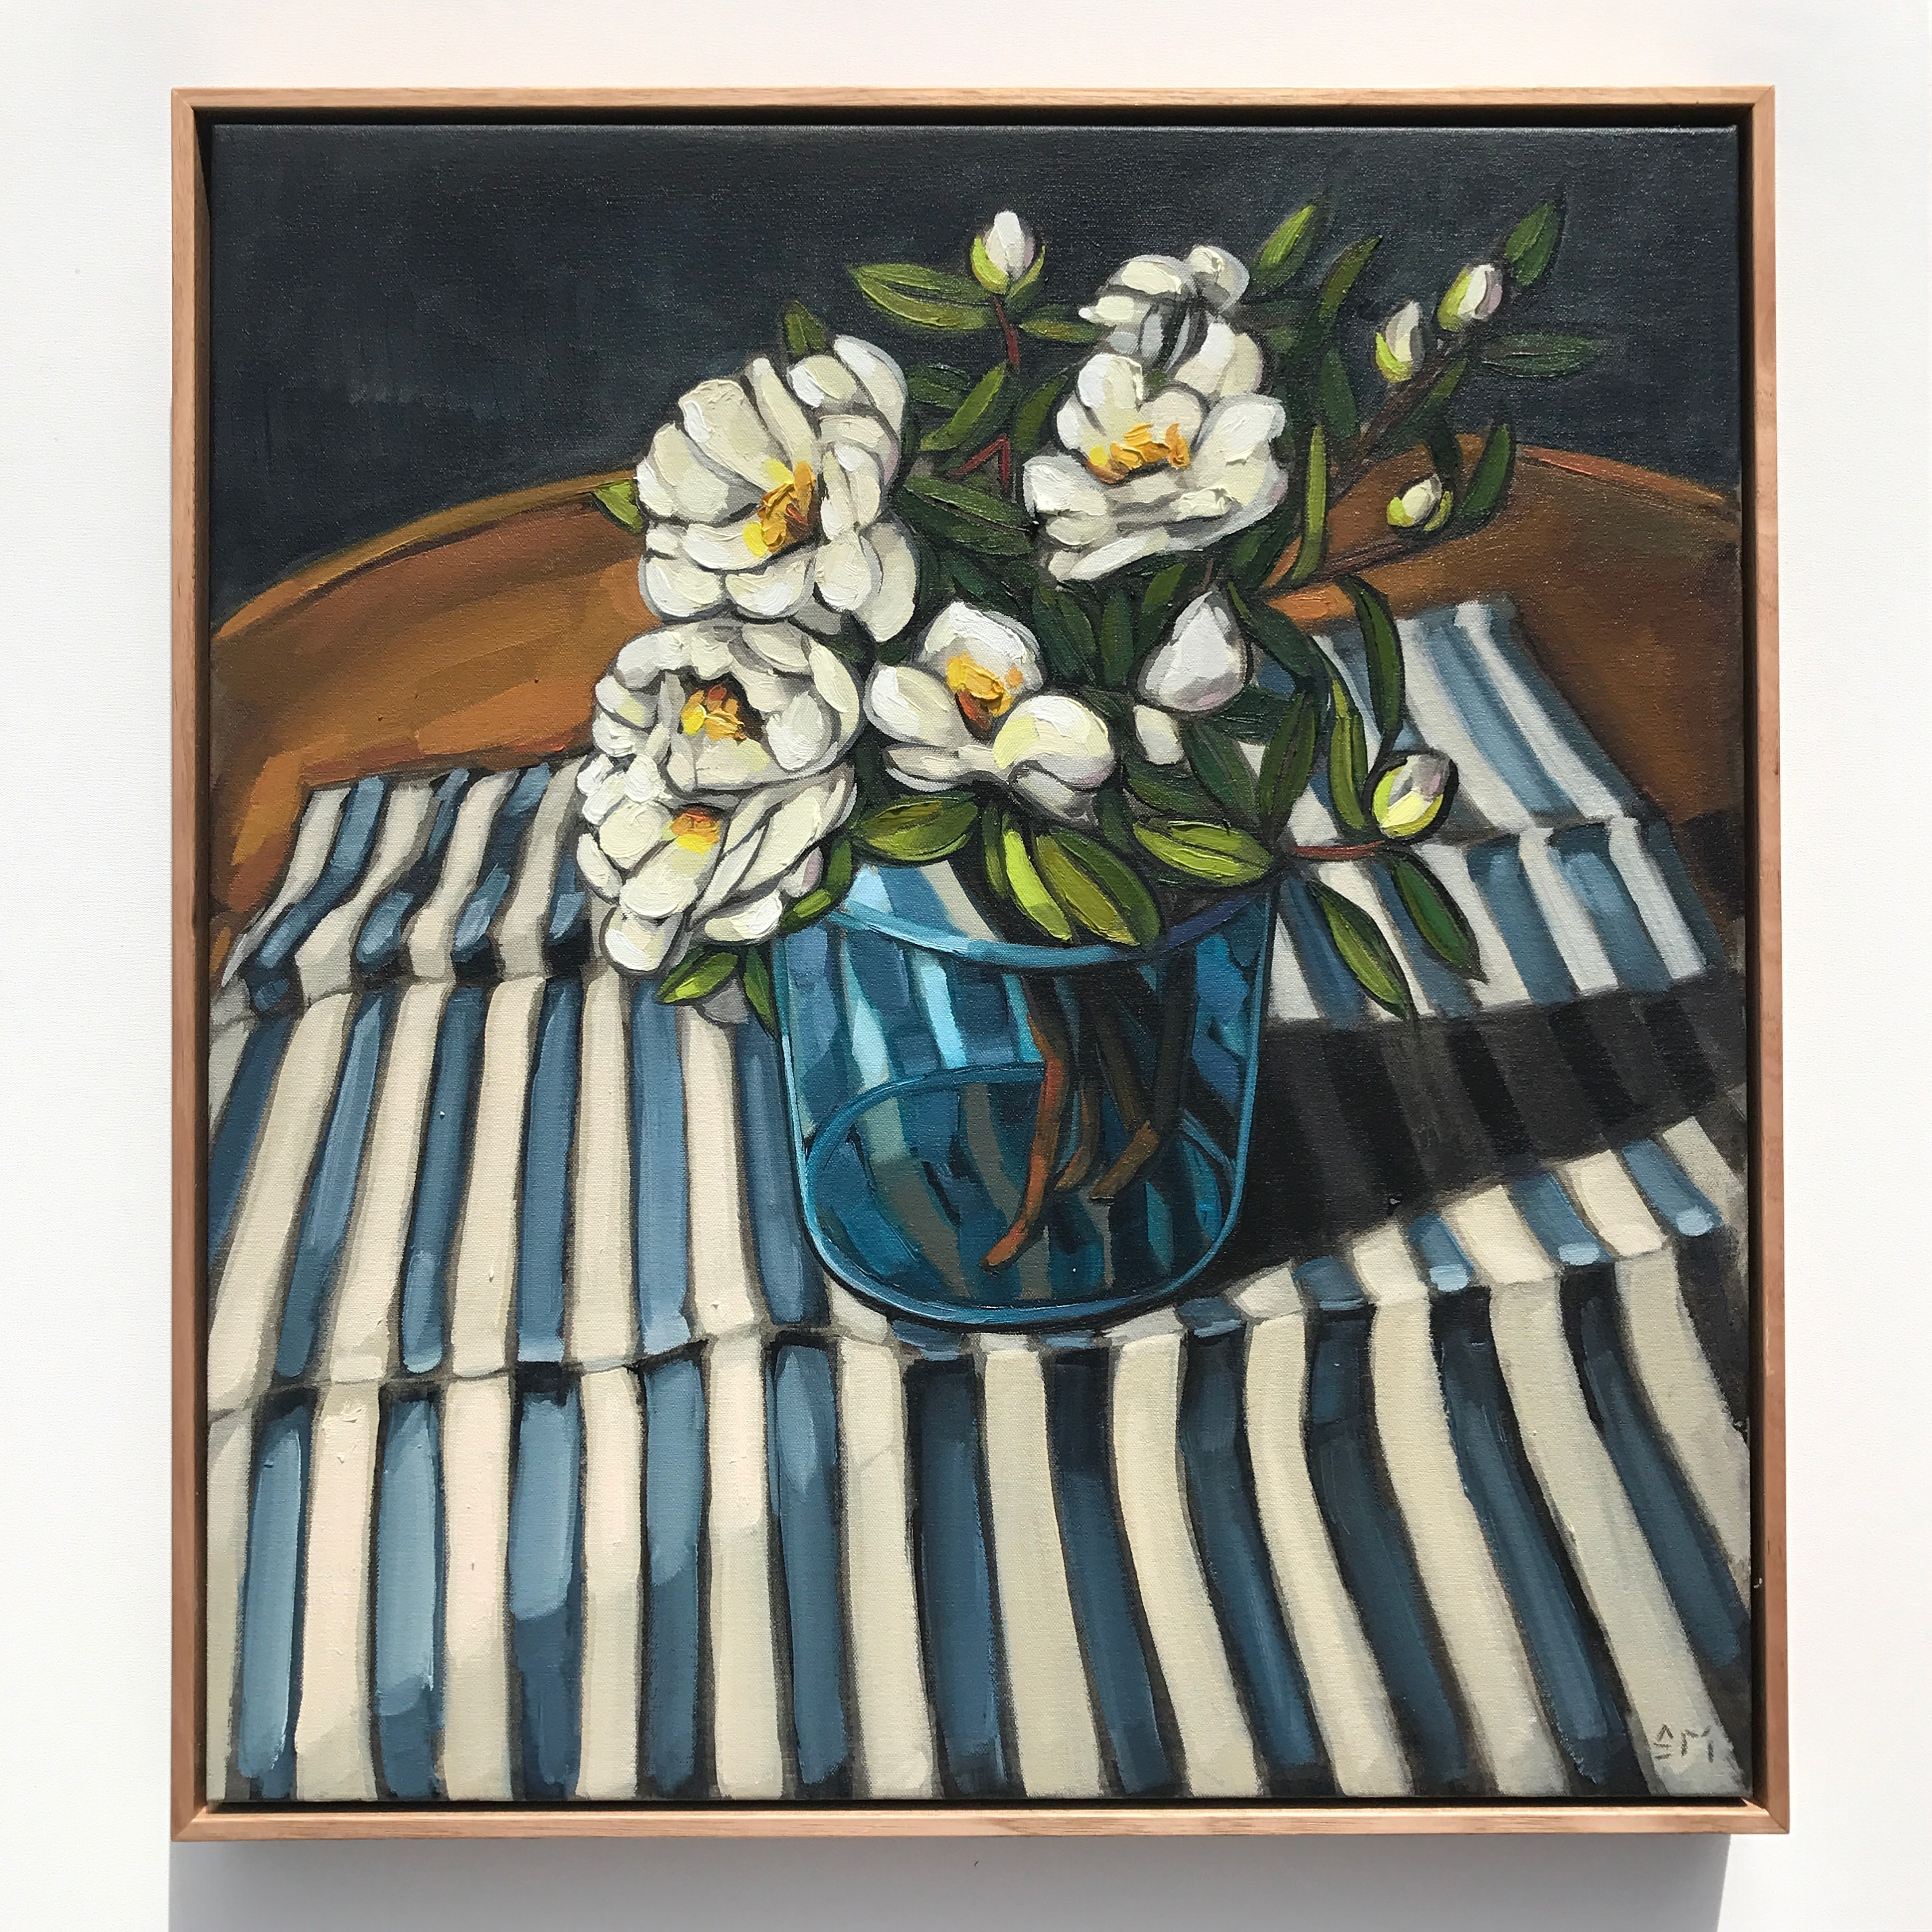 08_17 The Cloth Collection 'Camilleas & Stripes' 63x58cm $2,395